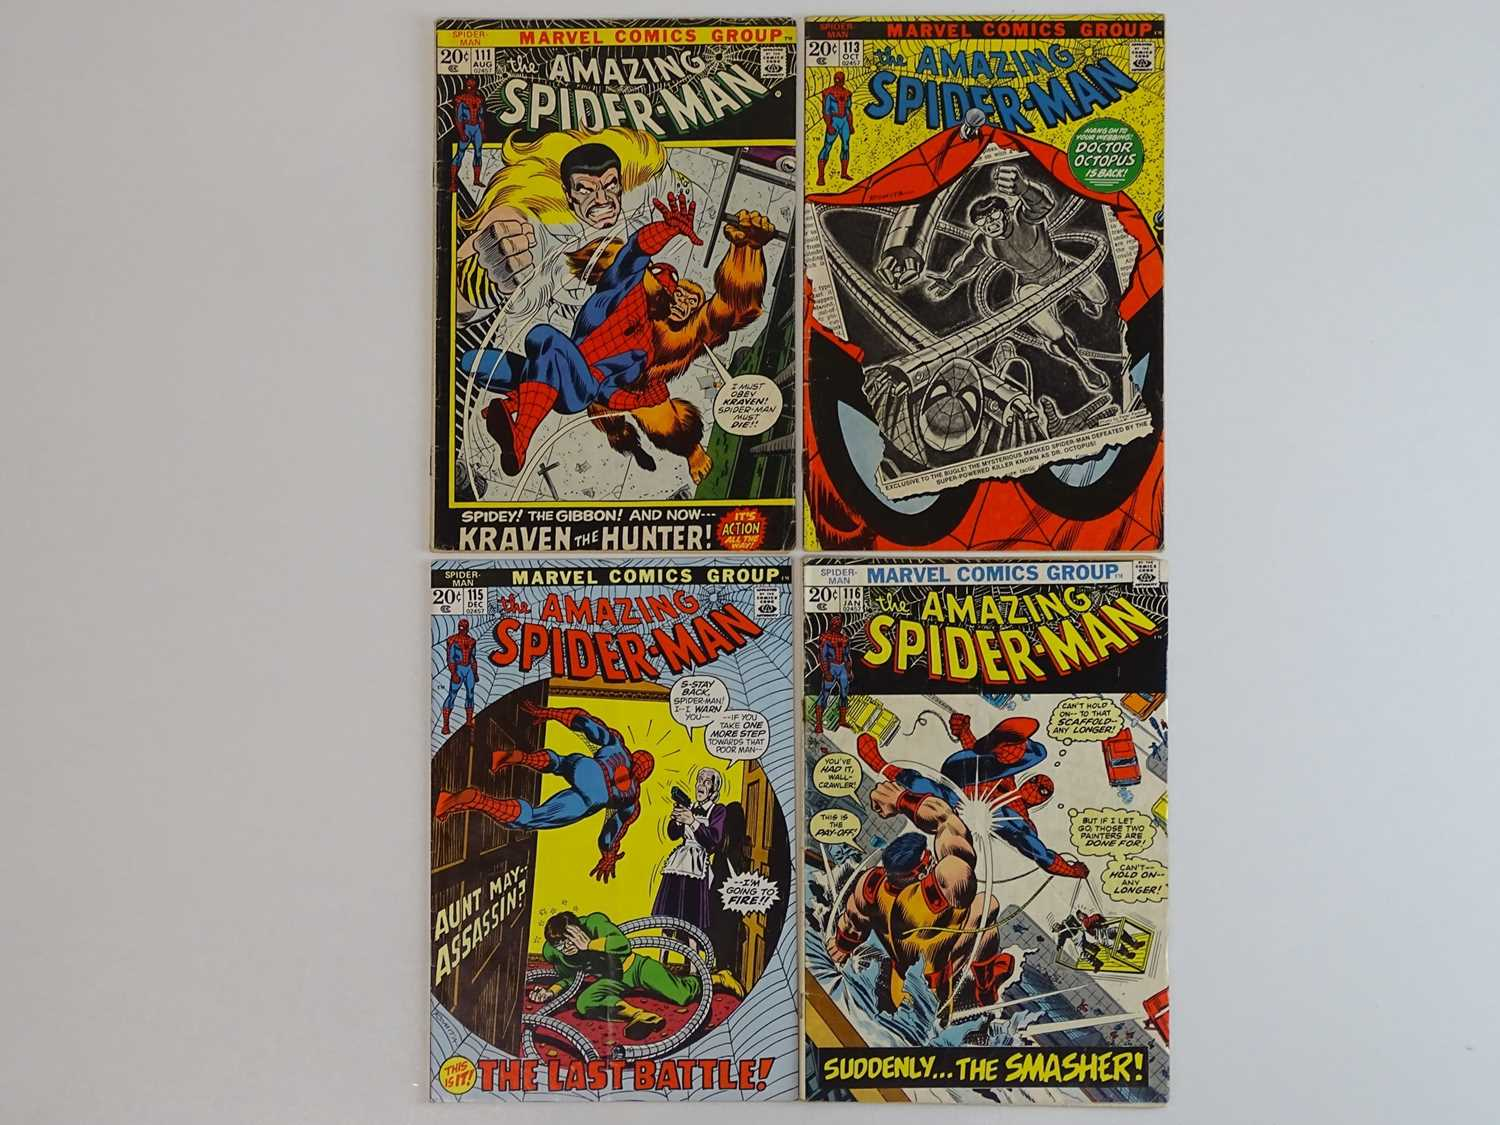 AMAZING SPIDER-MAN #111, 113, 115, 116 - (4 in Lot) - (1972/73 - MARVEL) - Includes First appearance